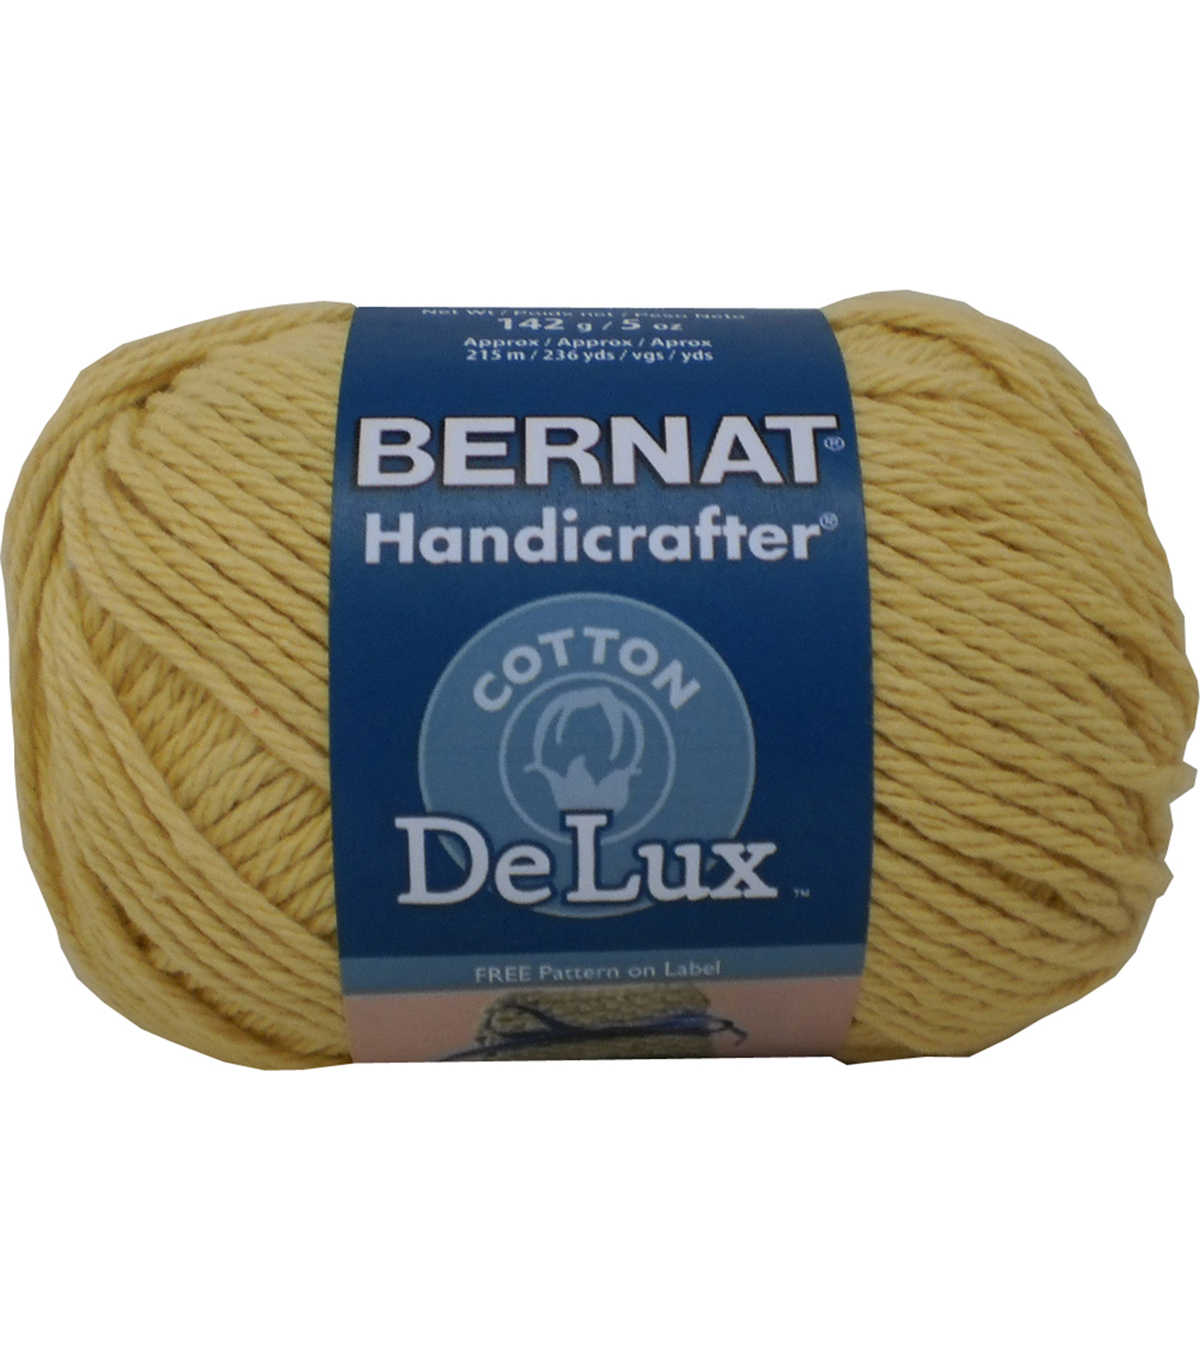 Bernat Handicrafter DeLux Cotton Yarn, Gold